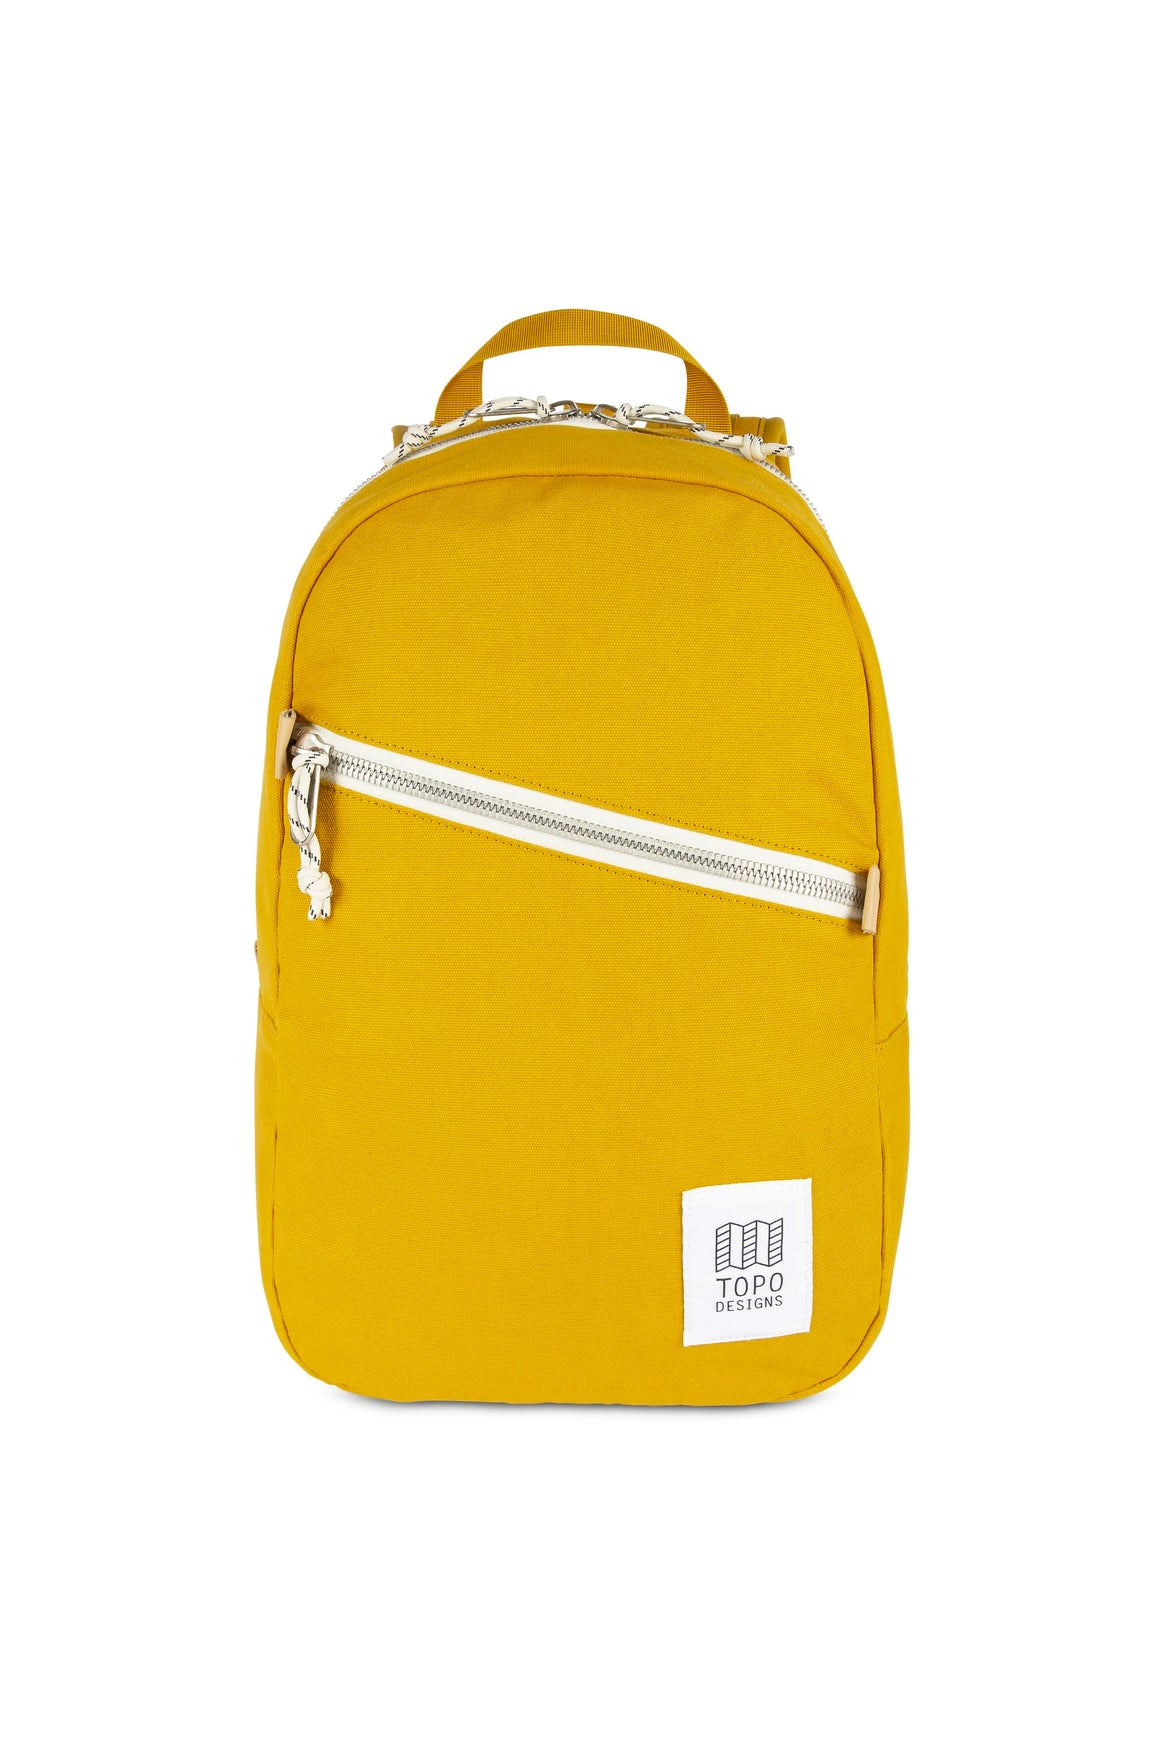 Topo Designs Light Pack in Mustard Canvas